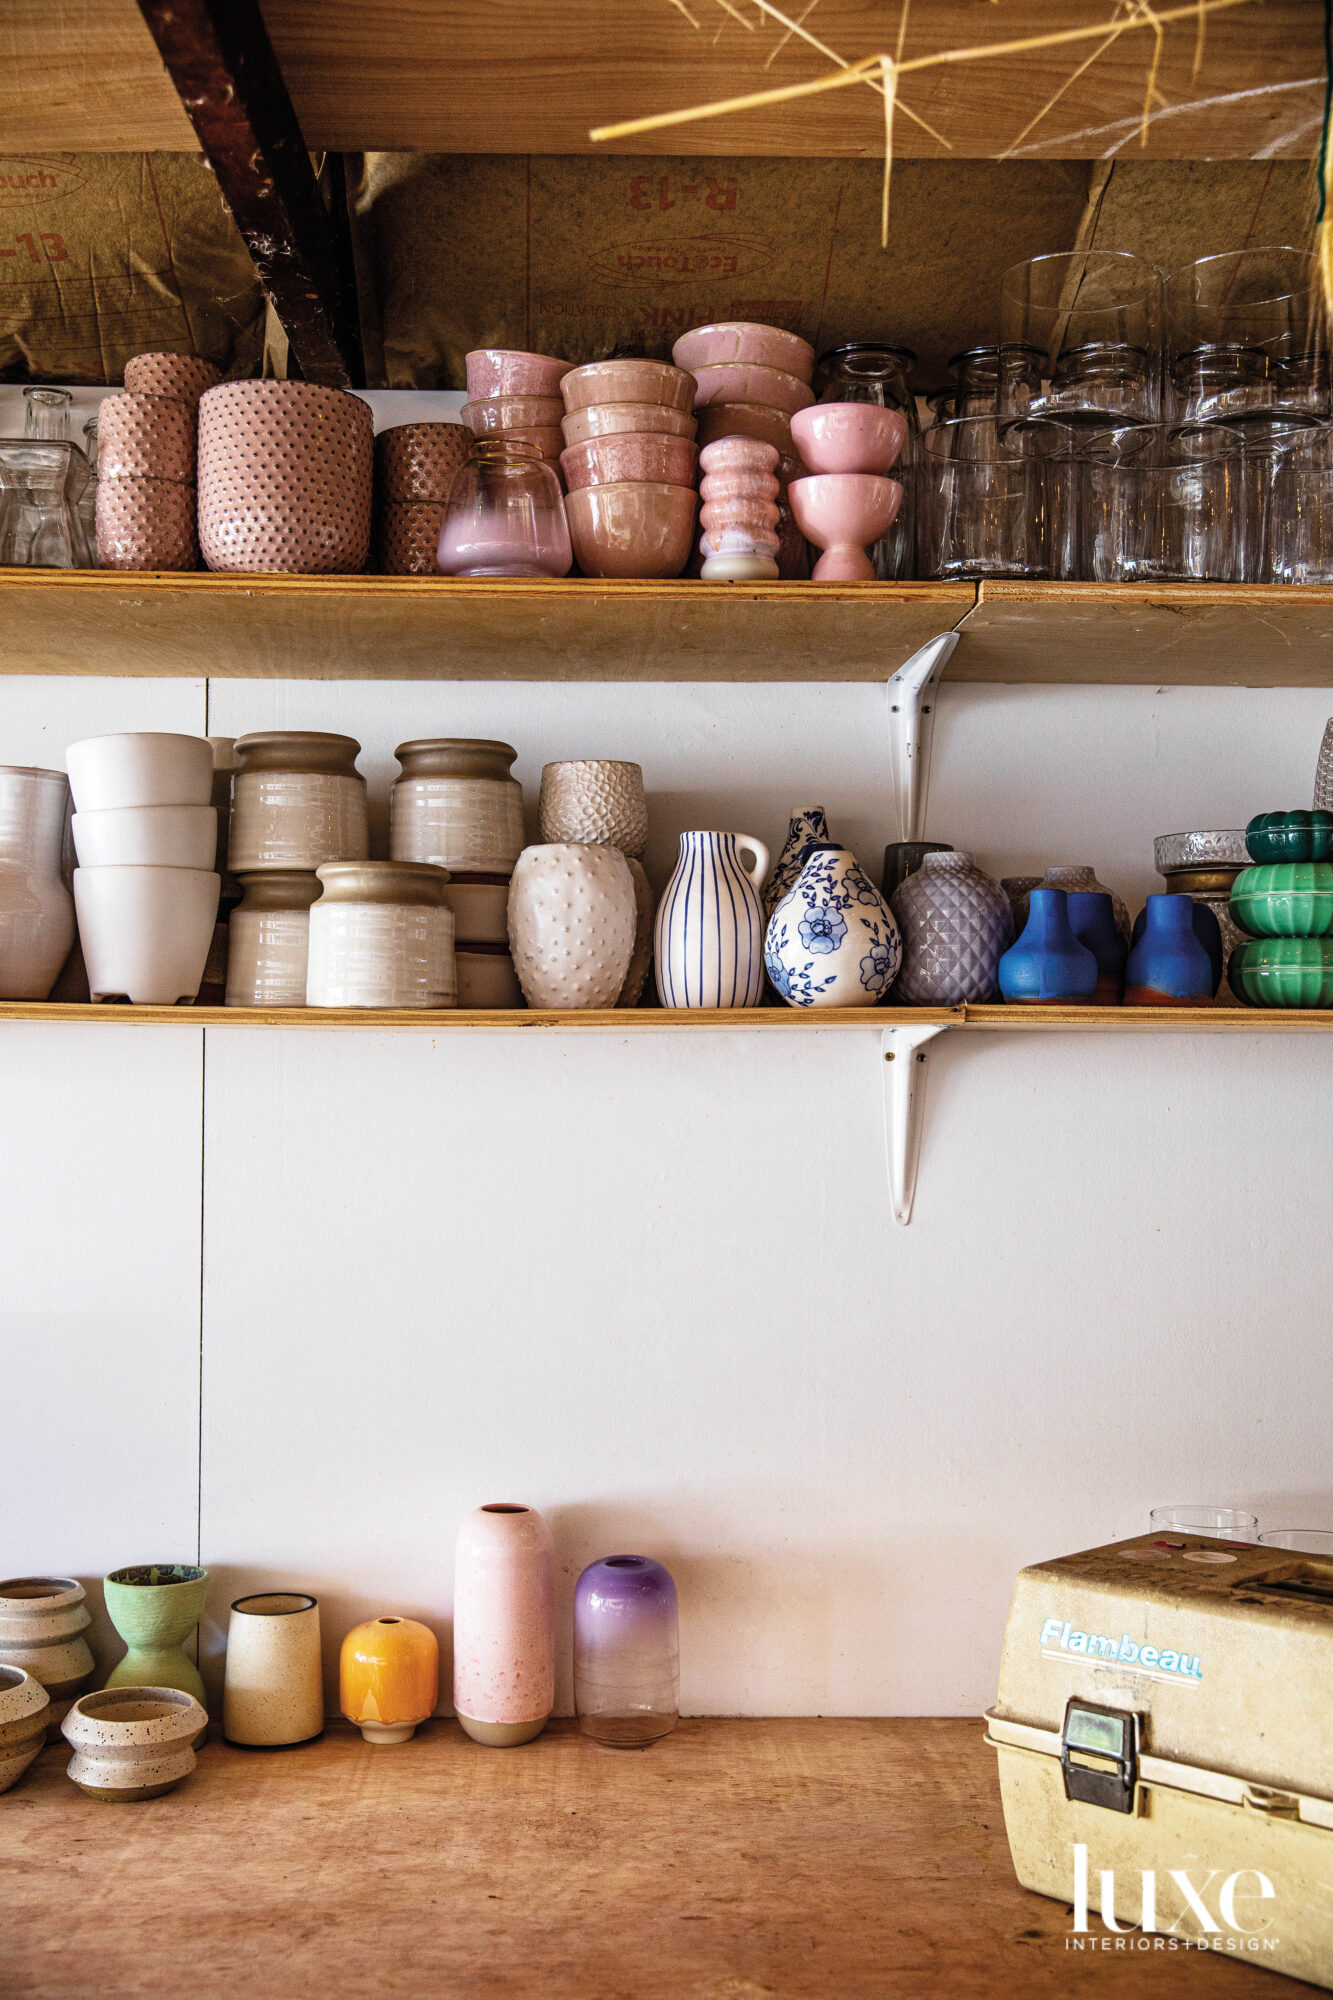 Shelves lined with colorful vases